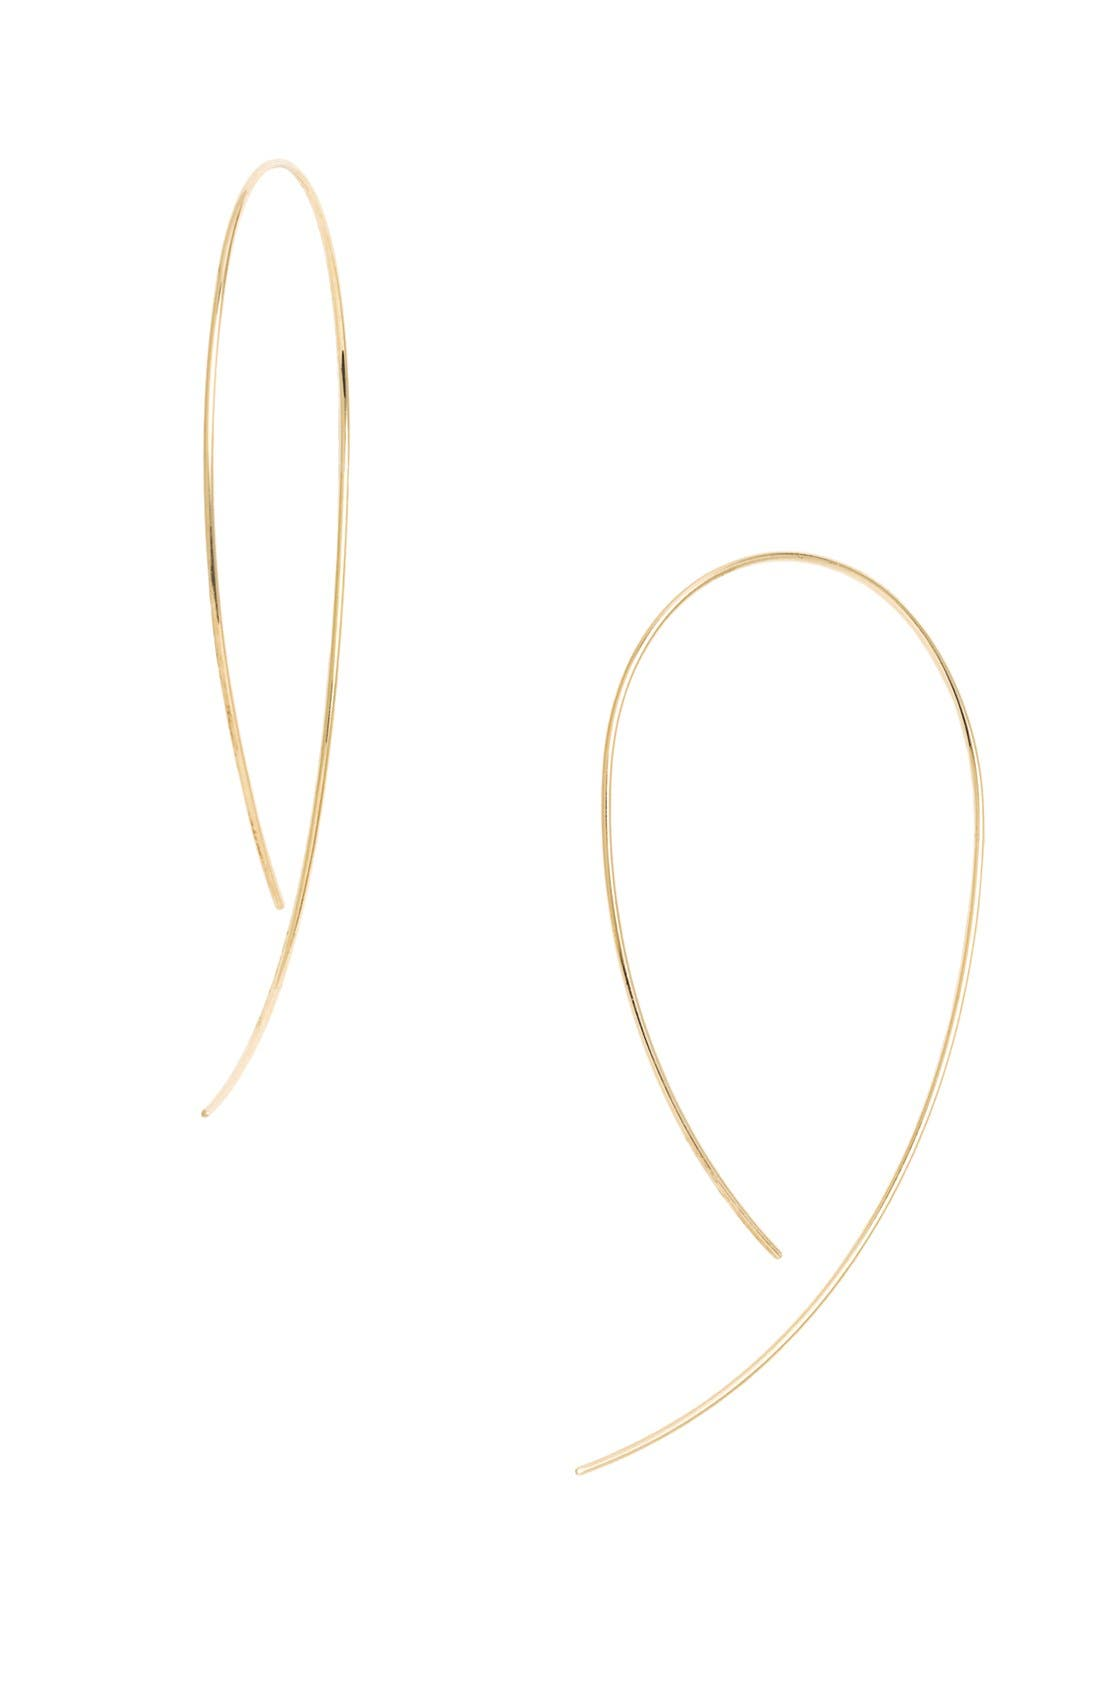 'Hooked on Hoop' Earrings,                             Alternate thumbnail 6, color,                             YELLOW GOLD